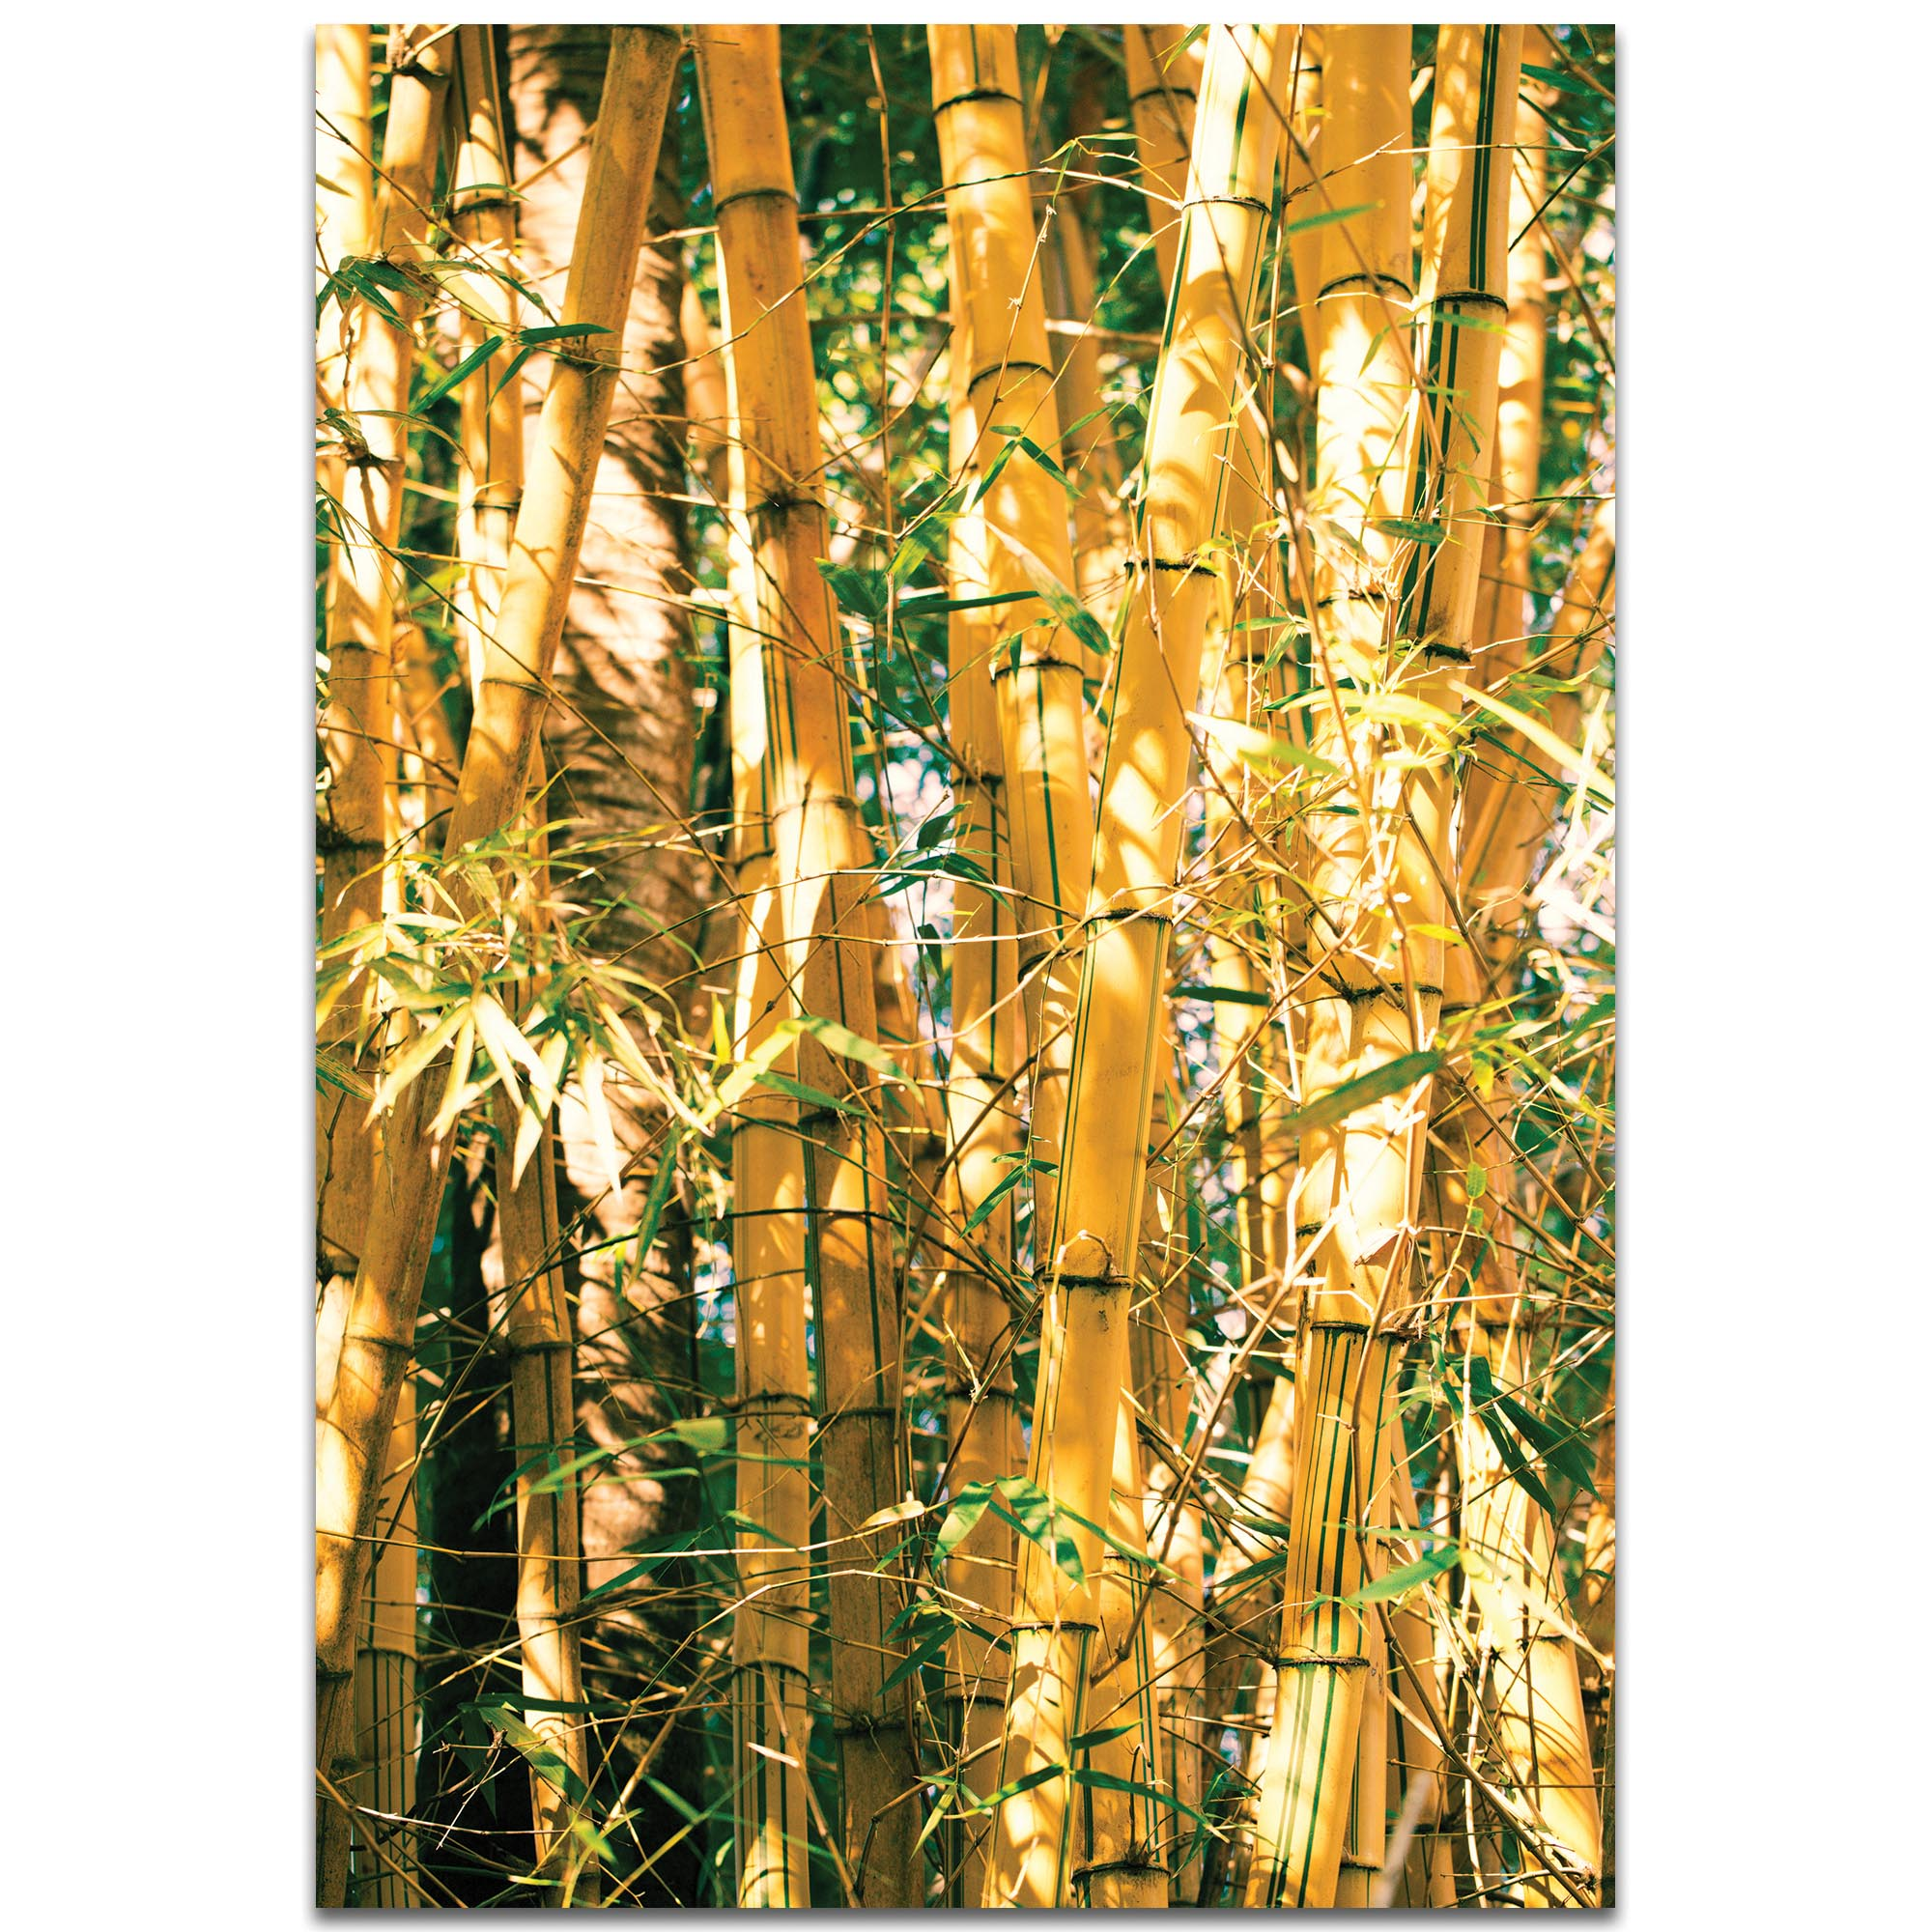 Metal Art Studio - Bamboo Gold by Meirav Levy - Nature Photography ...